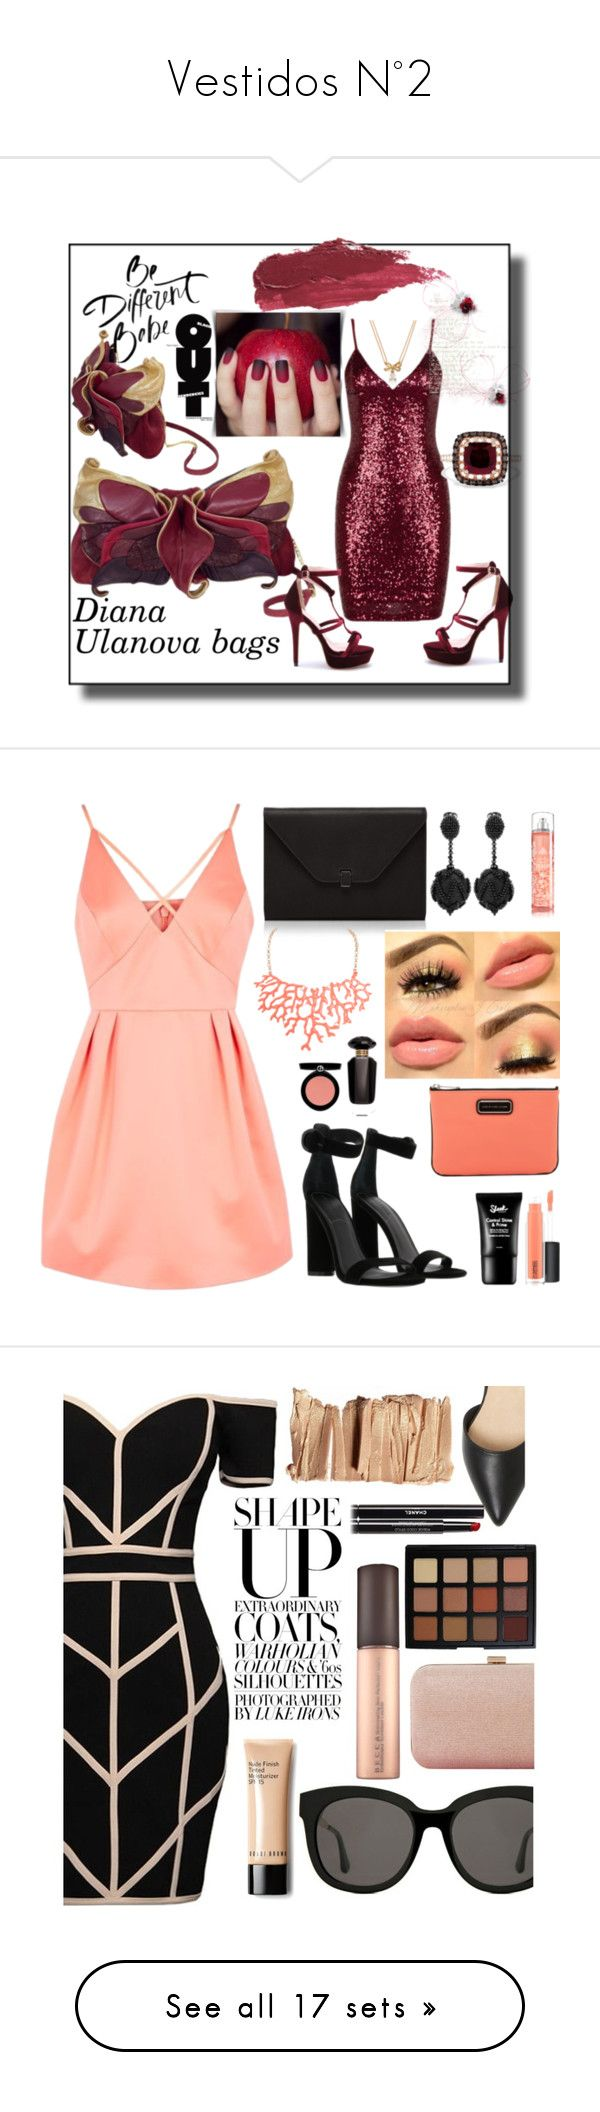 """""""Vestidos N°2"""" by kekabt ❤ liked on Polyvore featuring Effy Jewelry, Kate Spade, Lily Lolo, Topshop, Kendall + Kylie, Valextra, Humble Chic, Oscar de la Renta, MAC Cosmetics and Marc by Marc Jacobs"""